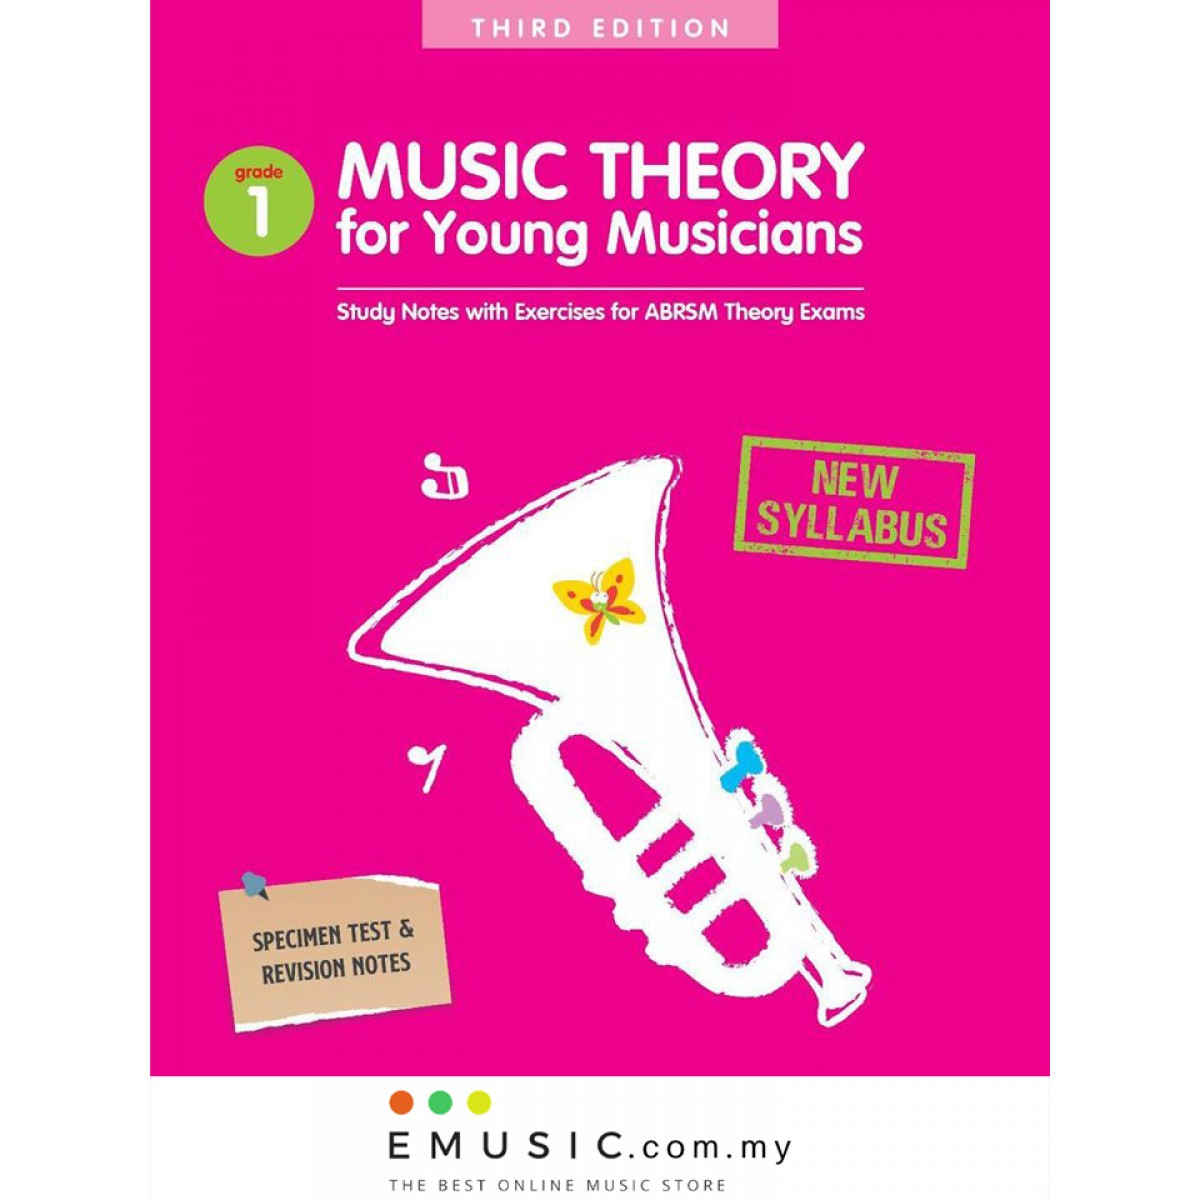 *NEW SYLLABUS* Poco Studio Music Theory for Young Musicians Grade 1 Third 3rd Edition by Ying Ying Ng